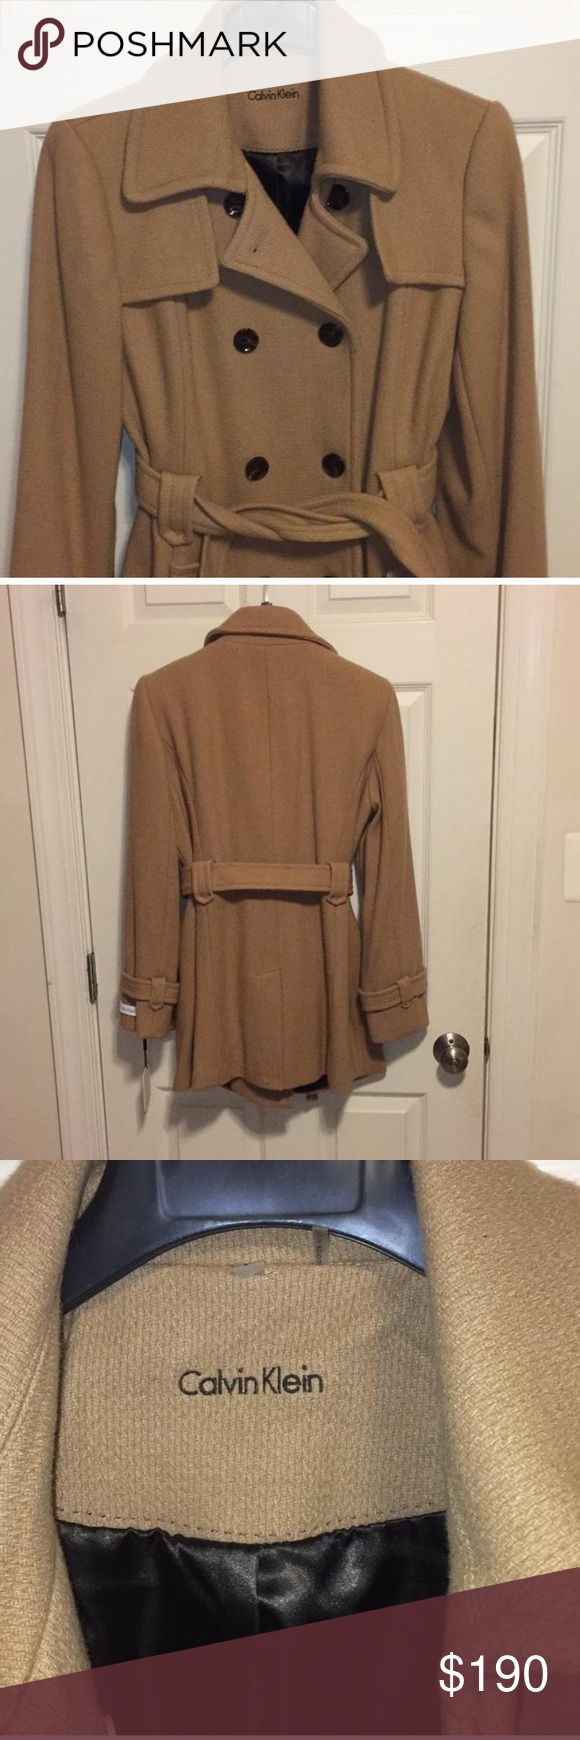 Calvin Klein Pea Coat Camel colored pea coat with waist tie. Tortoise colored buttons. Black lining with red stitching. Label is a Large but fits like a size 8. Calvin Klein Jackets & Coats Pea Coats